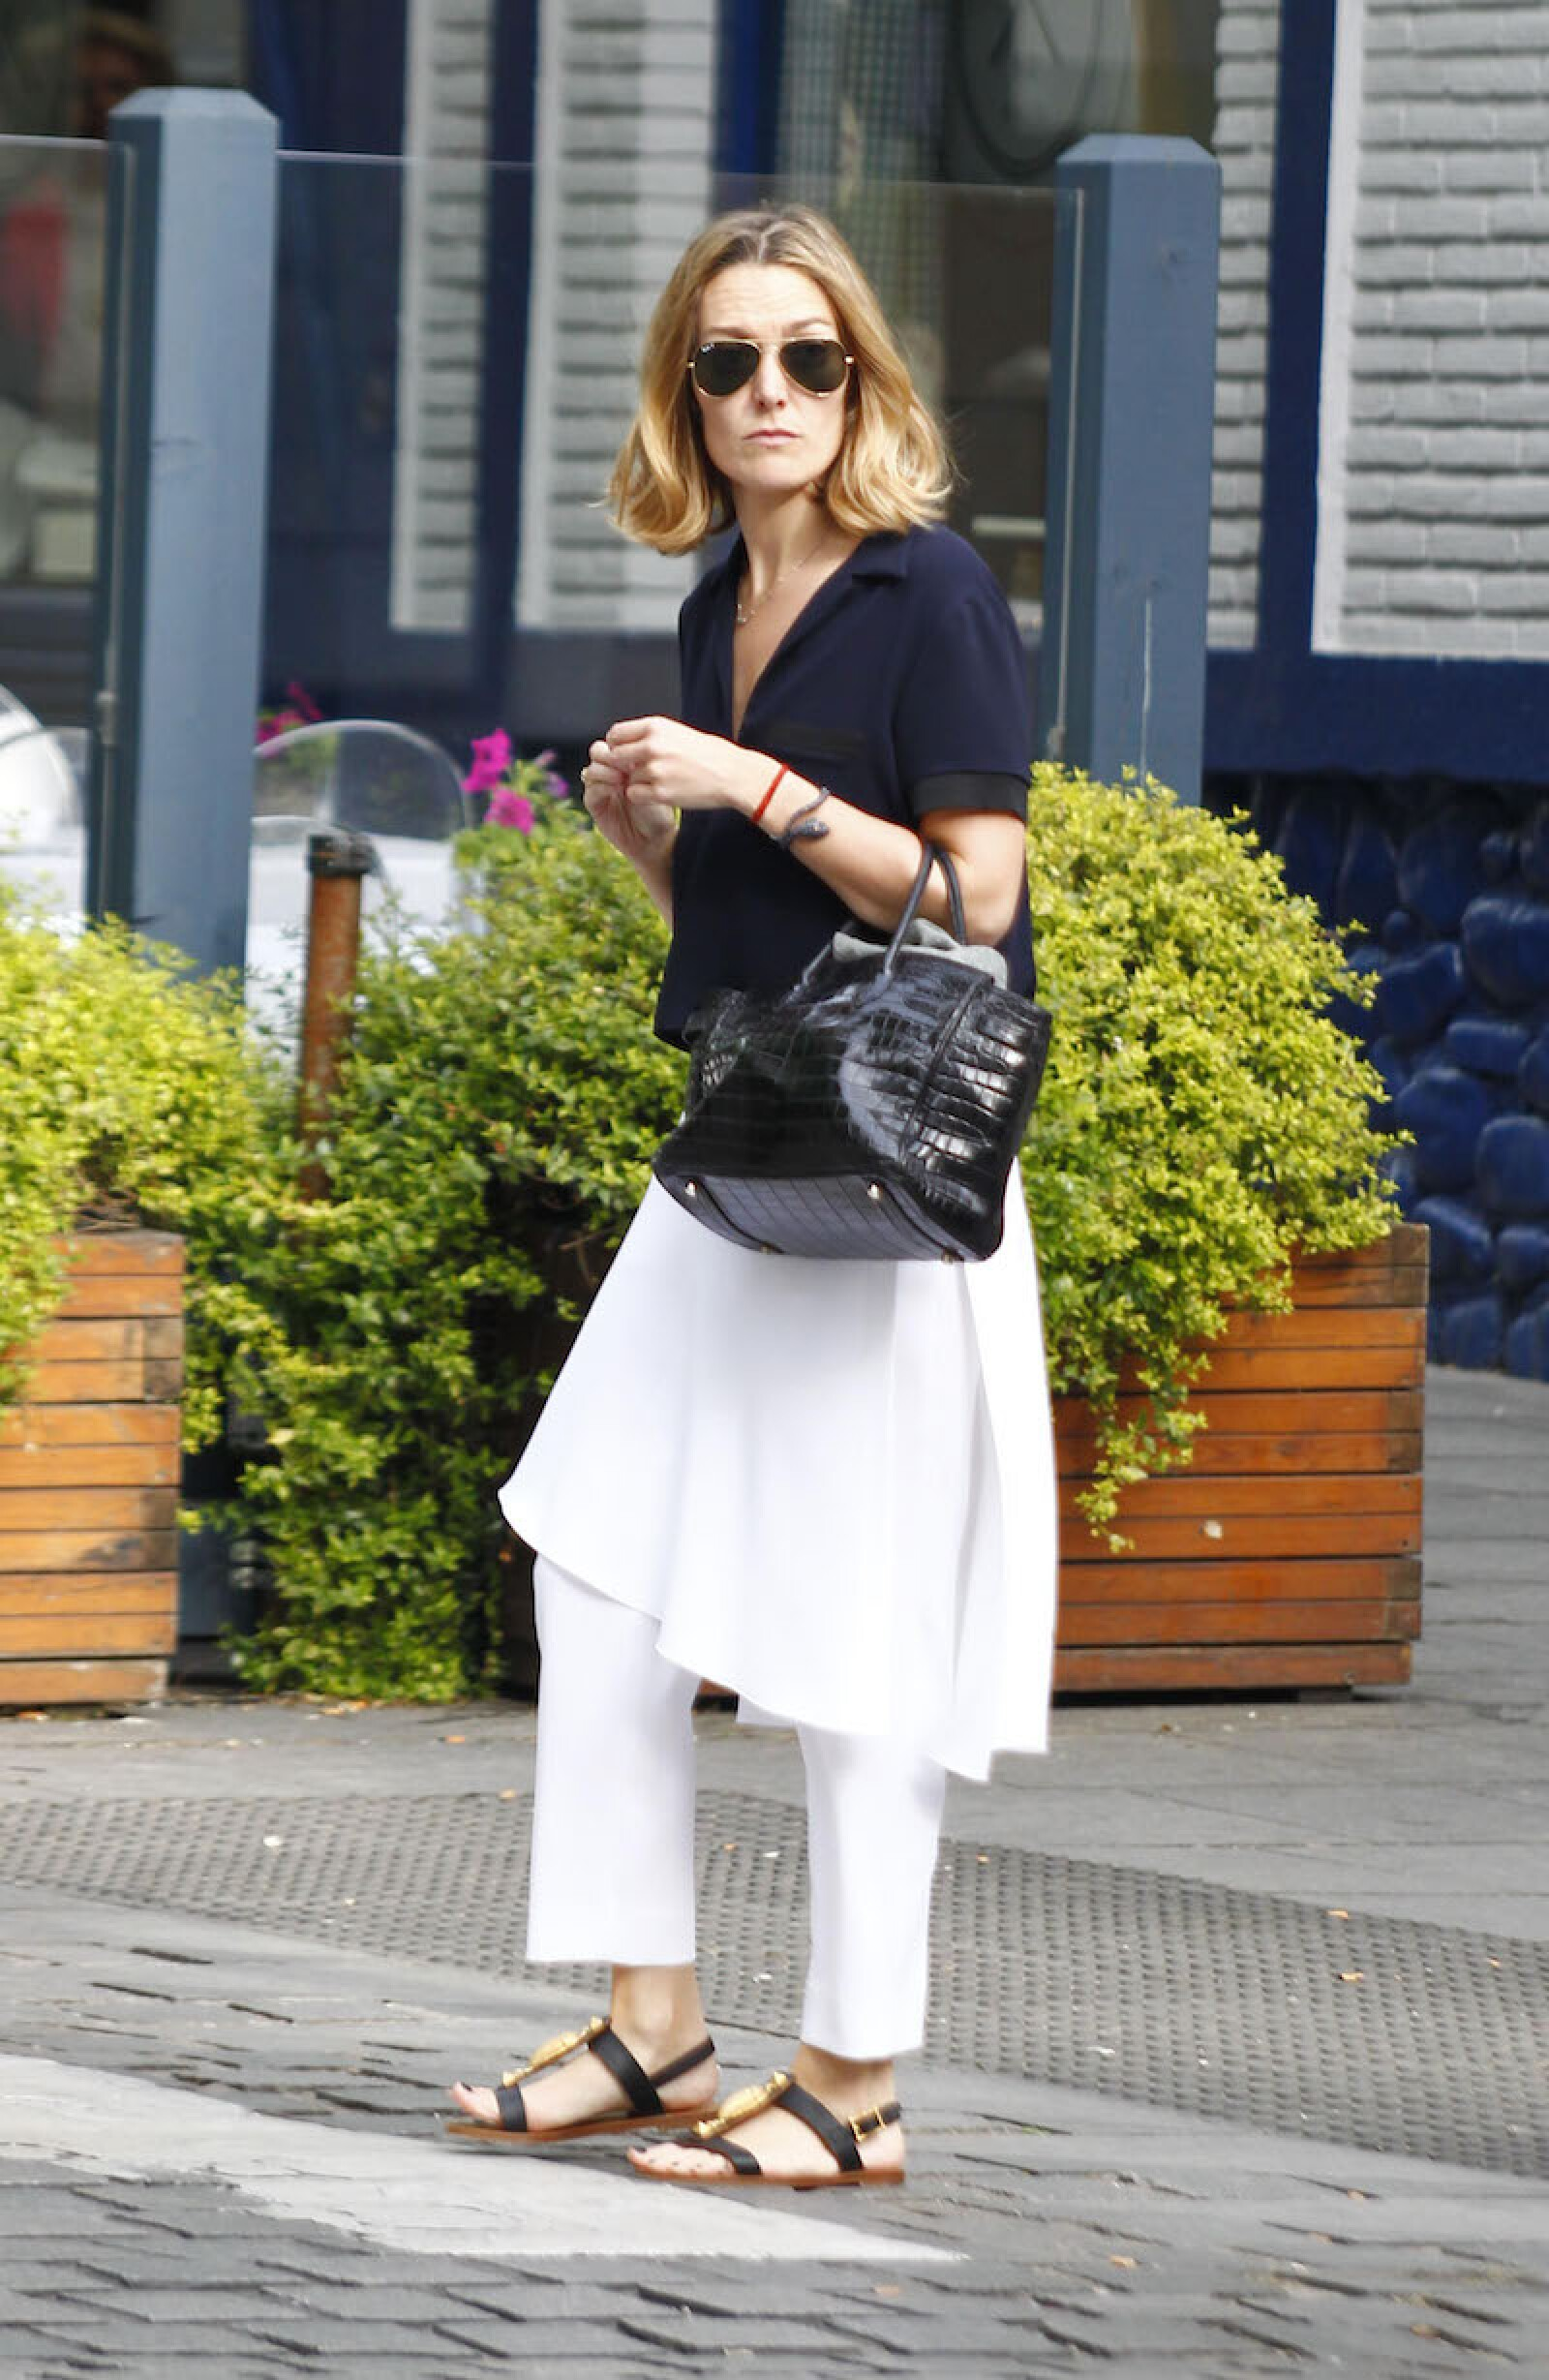 Celebrities Sighting In Madrid - May 05, 2014